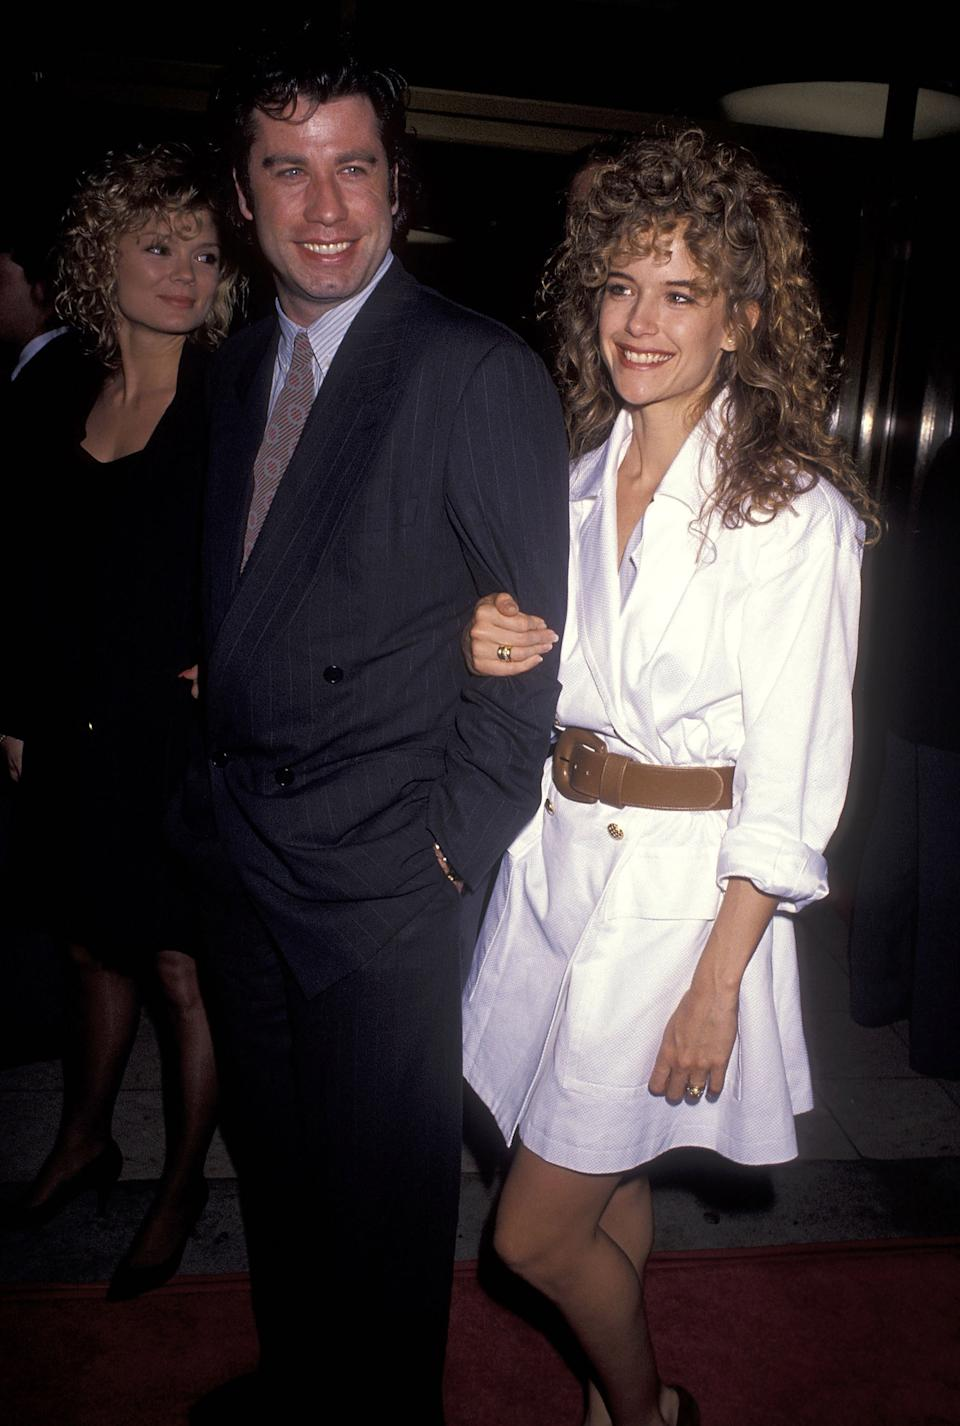 John Travolta and Kelly Preston attend the 'Hudson Hawk' Westwood Premiere on May 20, 1991 at Mann National Theatre in Westwood, California. (Photo by Ron Galella, Ltd./Ron Galella Collection via Getty Images)